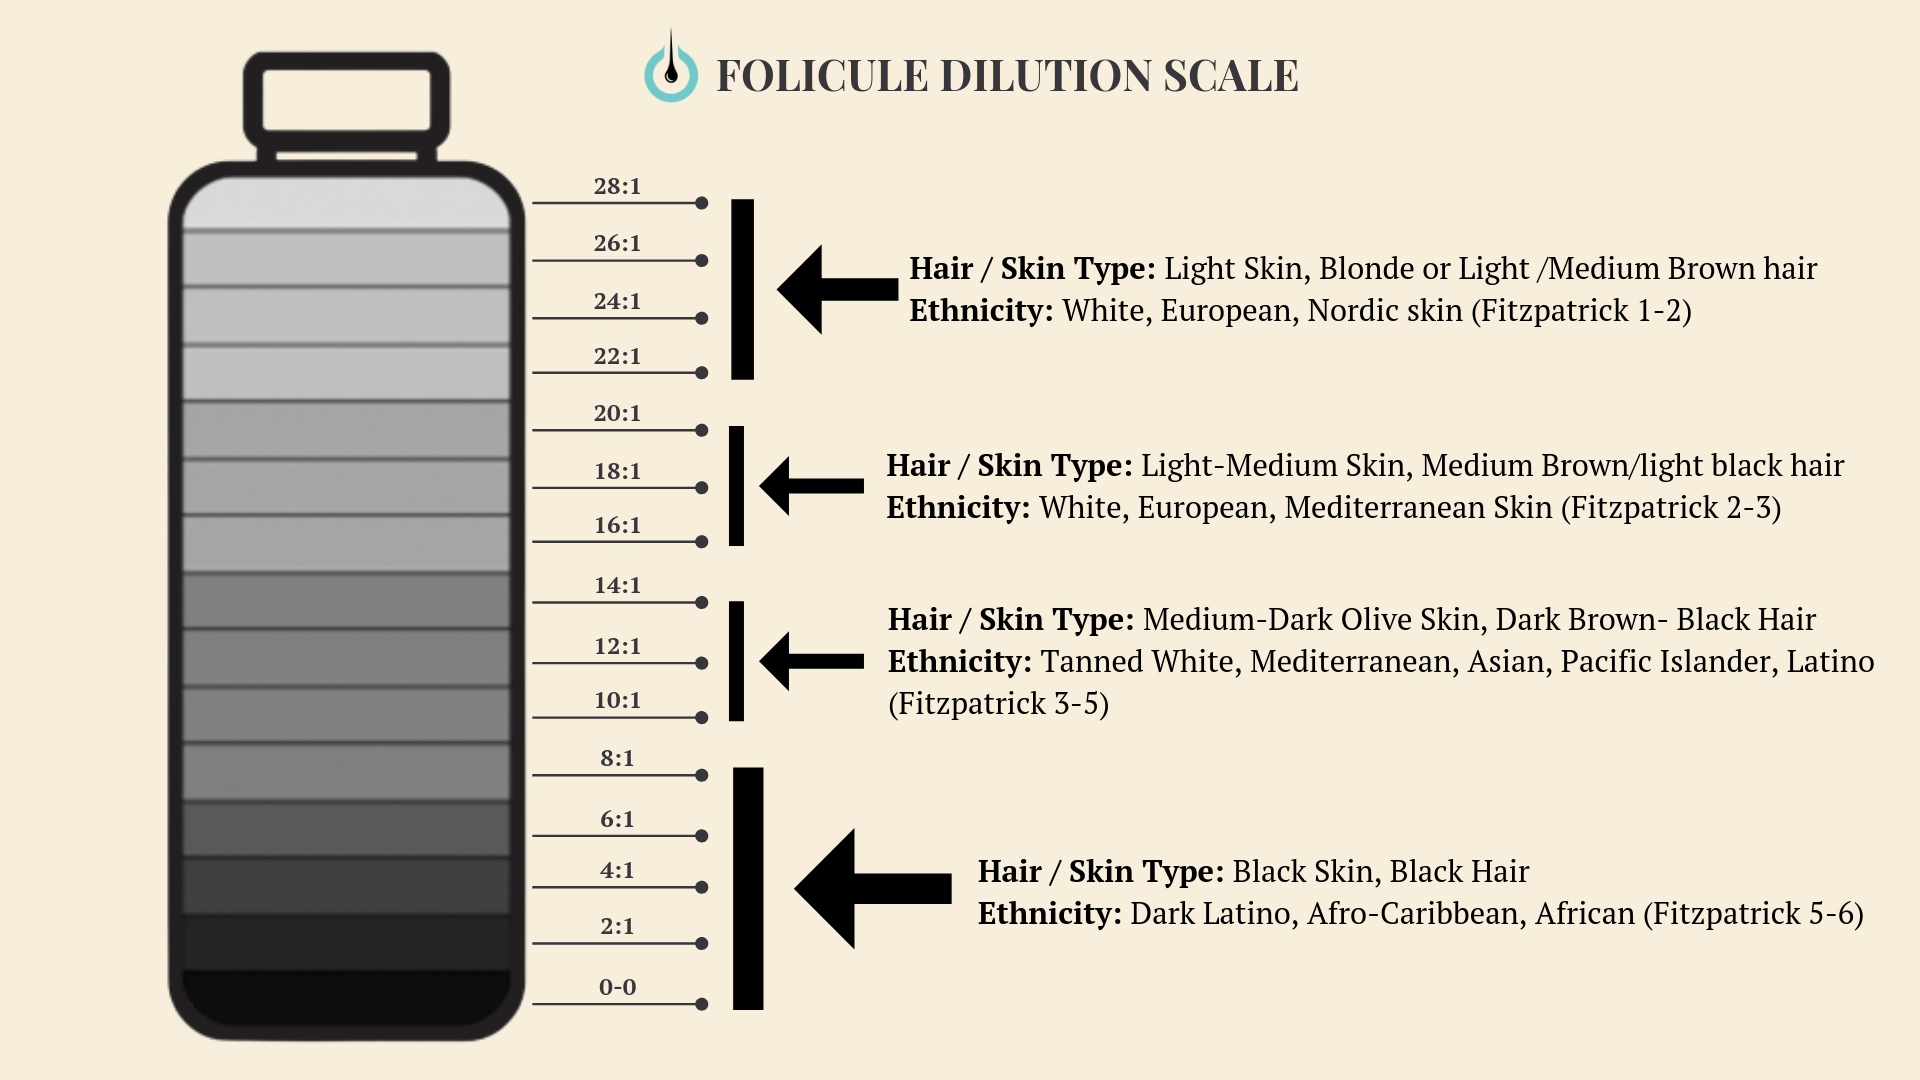 Folicule scalp micropigmentation dilution scale